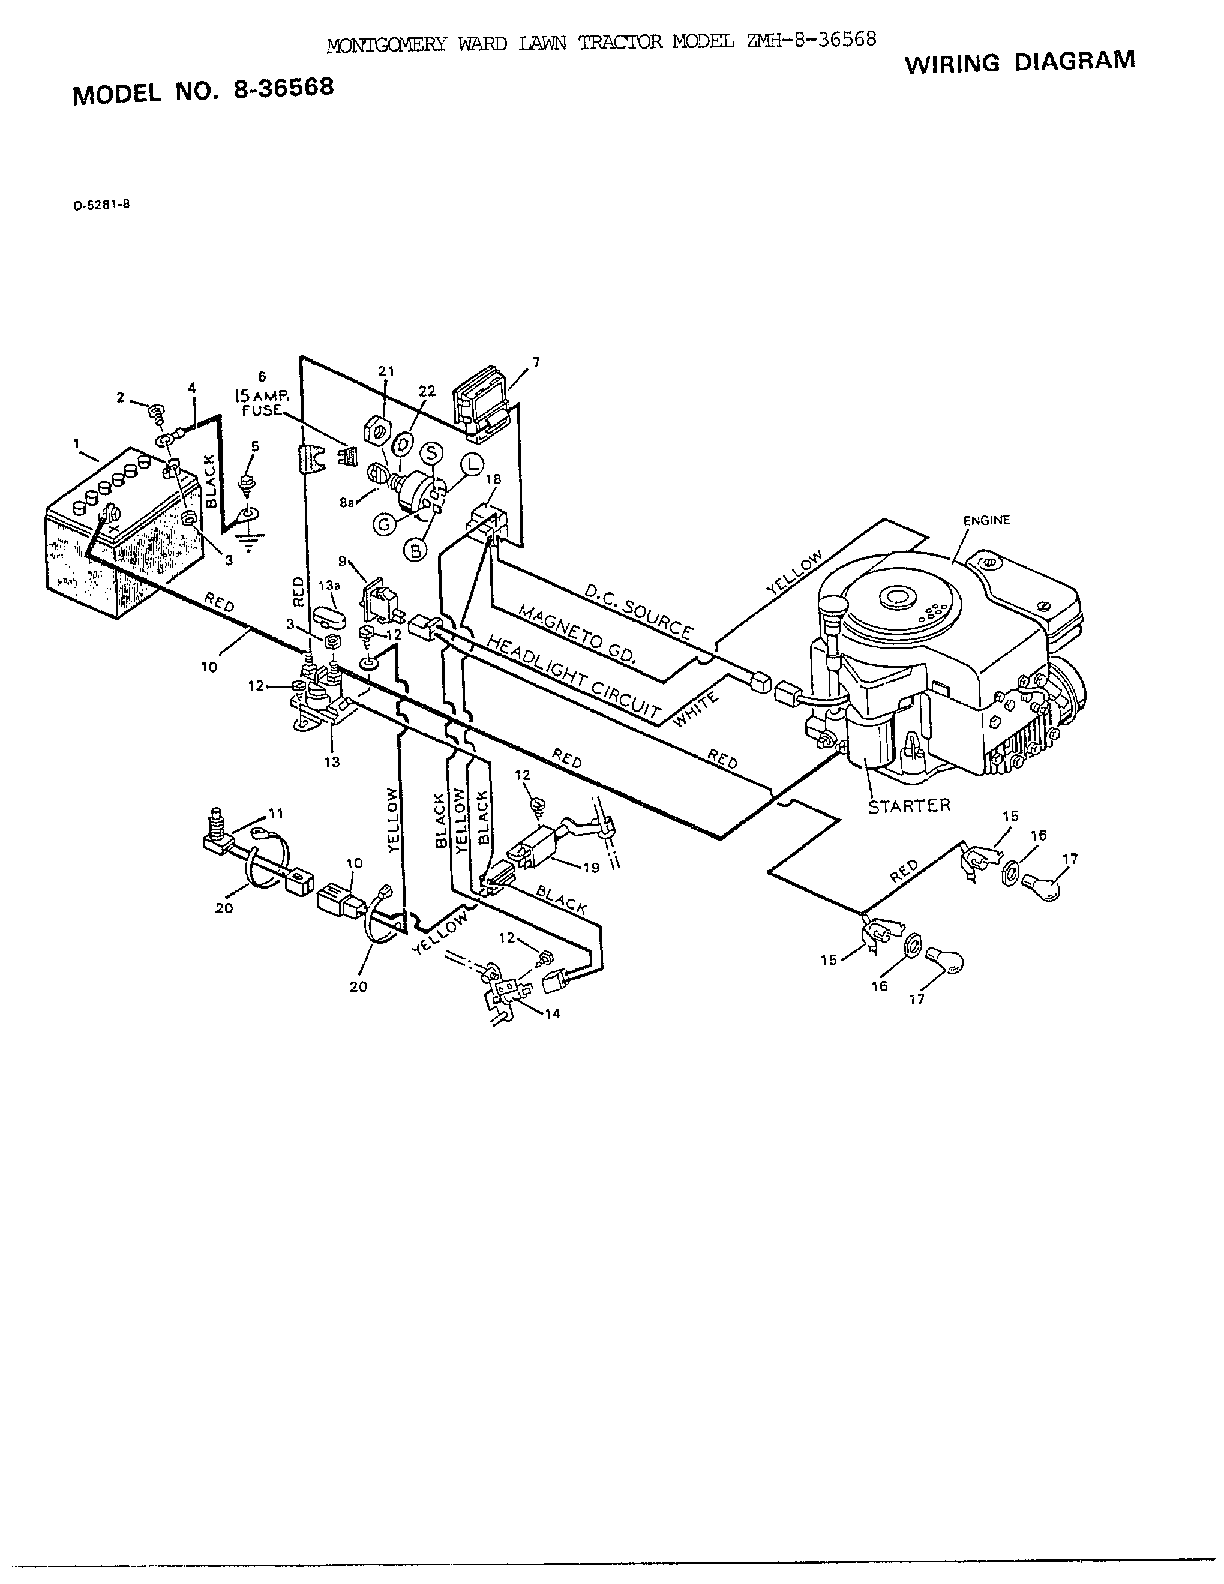 medium resolution of wiring diagram diagram and parts list for murray ridingmowertractor wiring diagram today